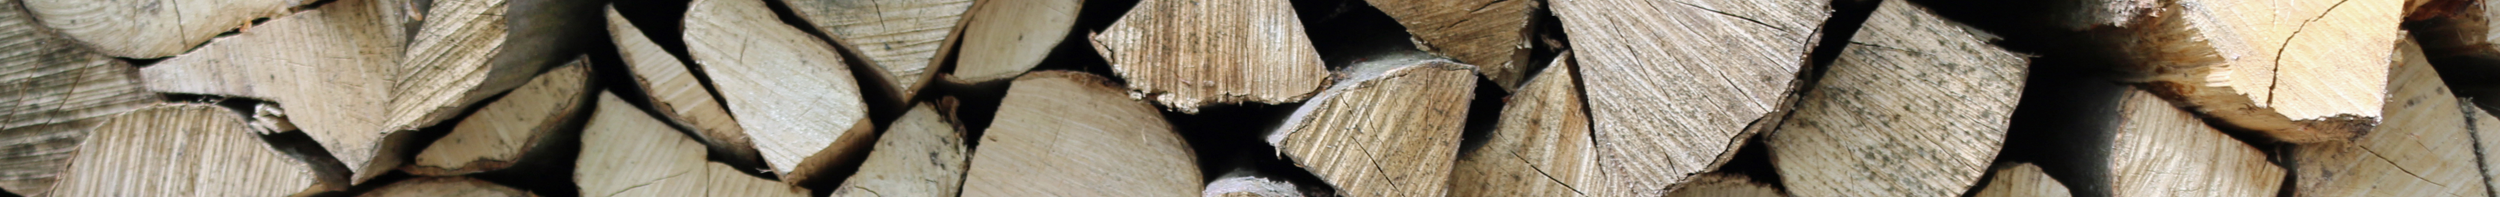 Testimonials header image of logs stacked up for ALL FIRED UP